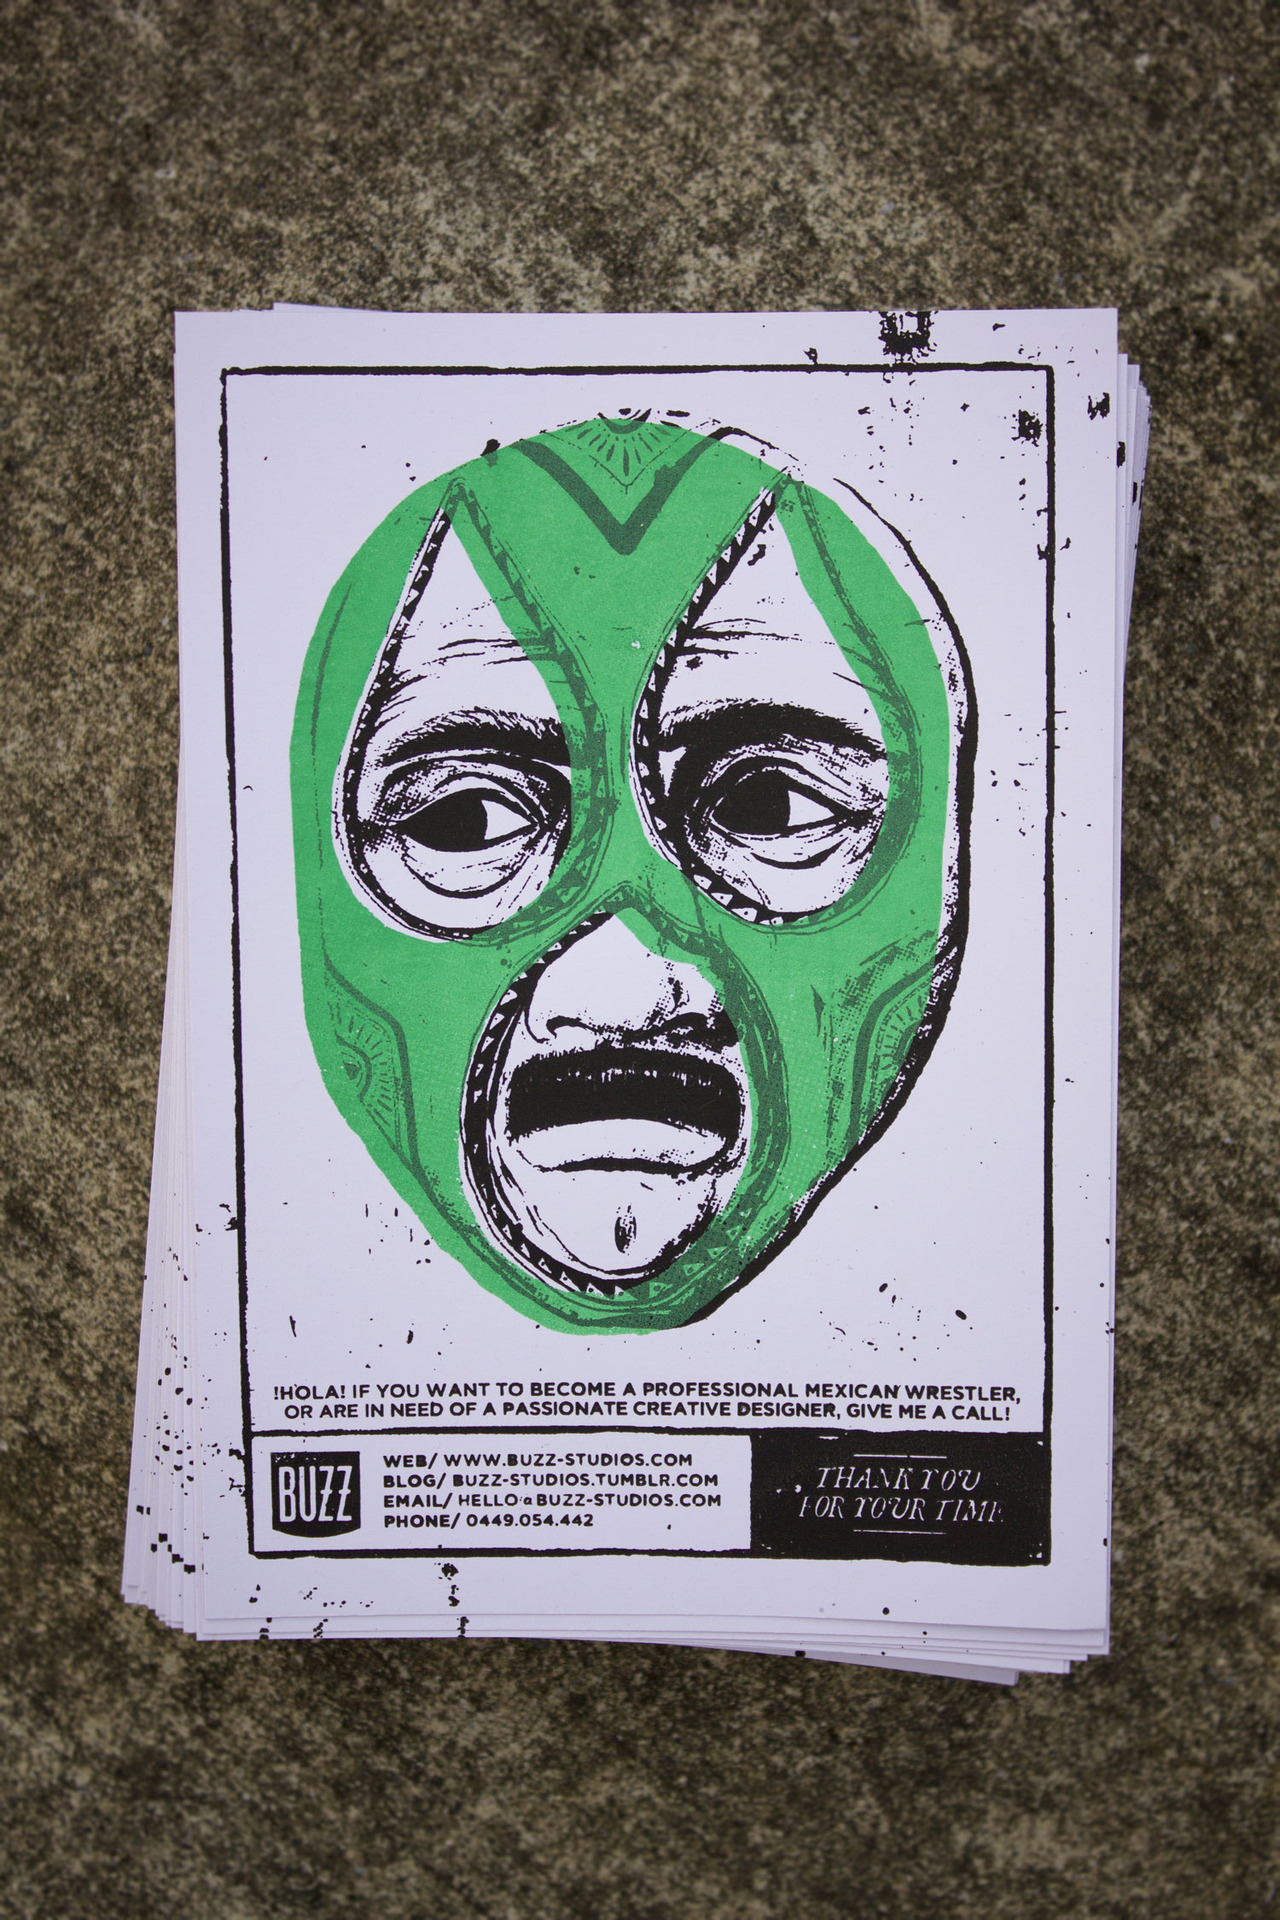 New screen prints! Sort of an oversized business card, with just enough room for a lucha libre!